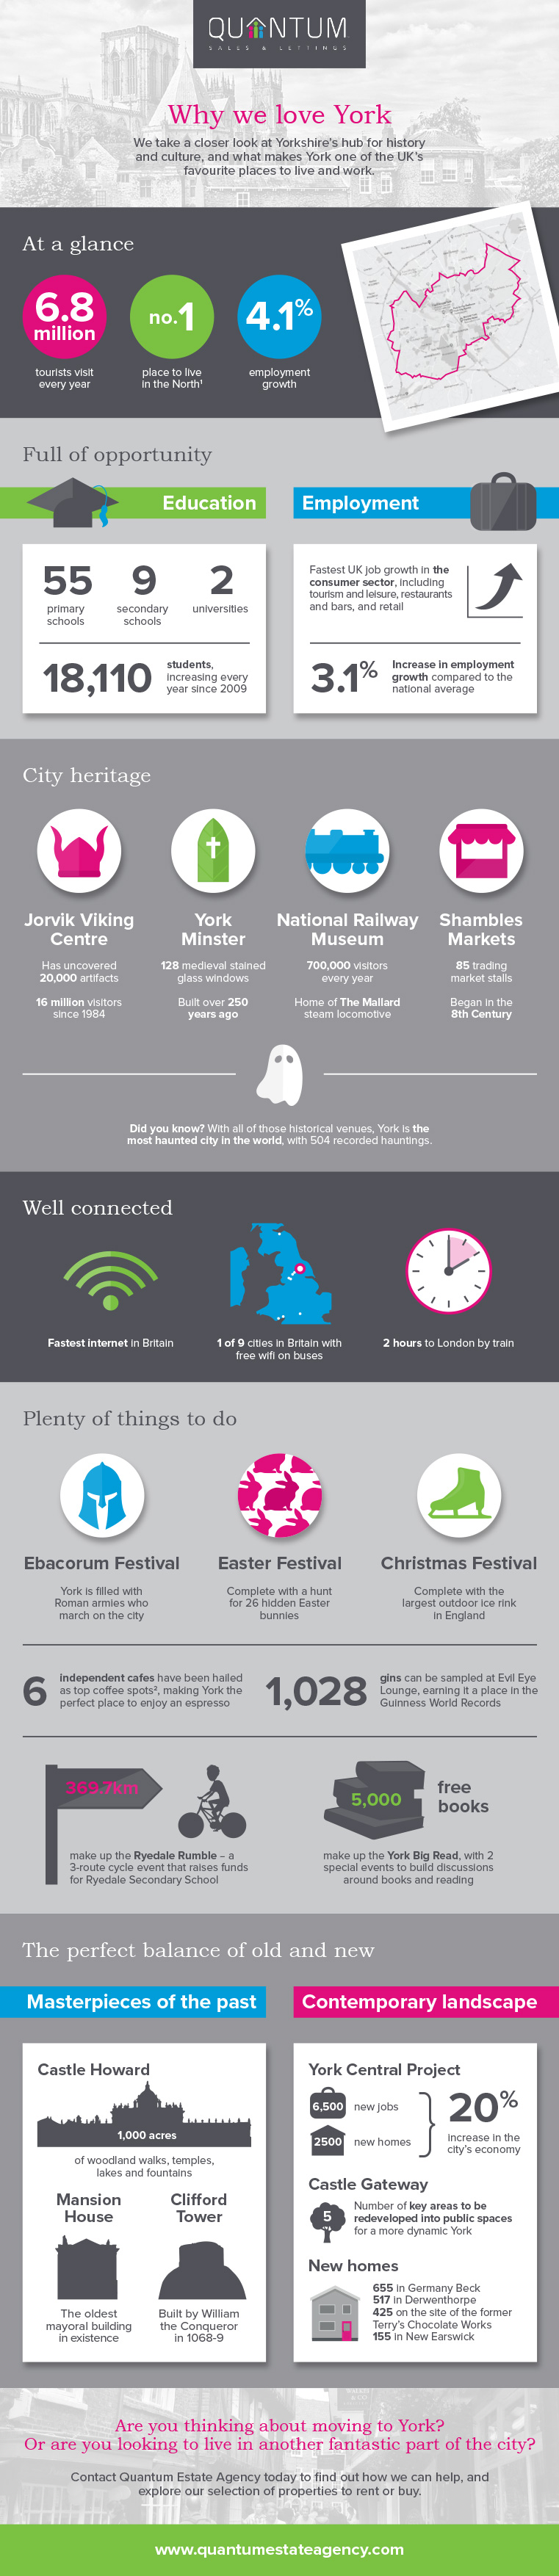 why we love yorkshire infographic by Quantum Estate agents